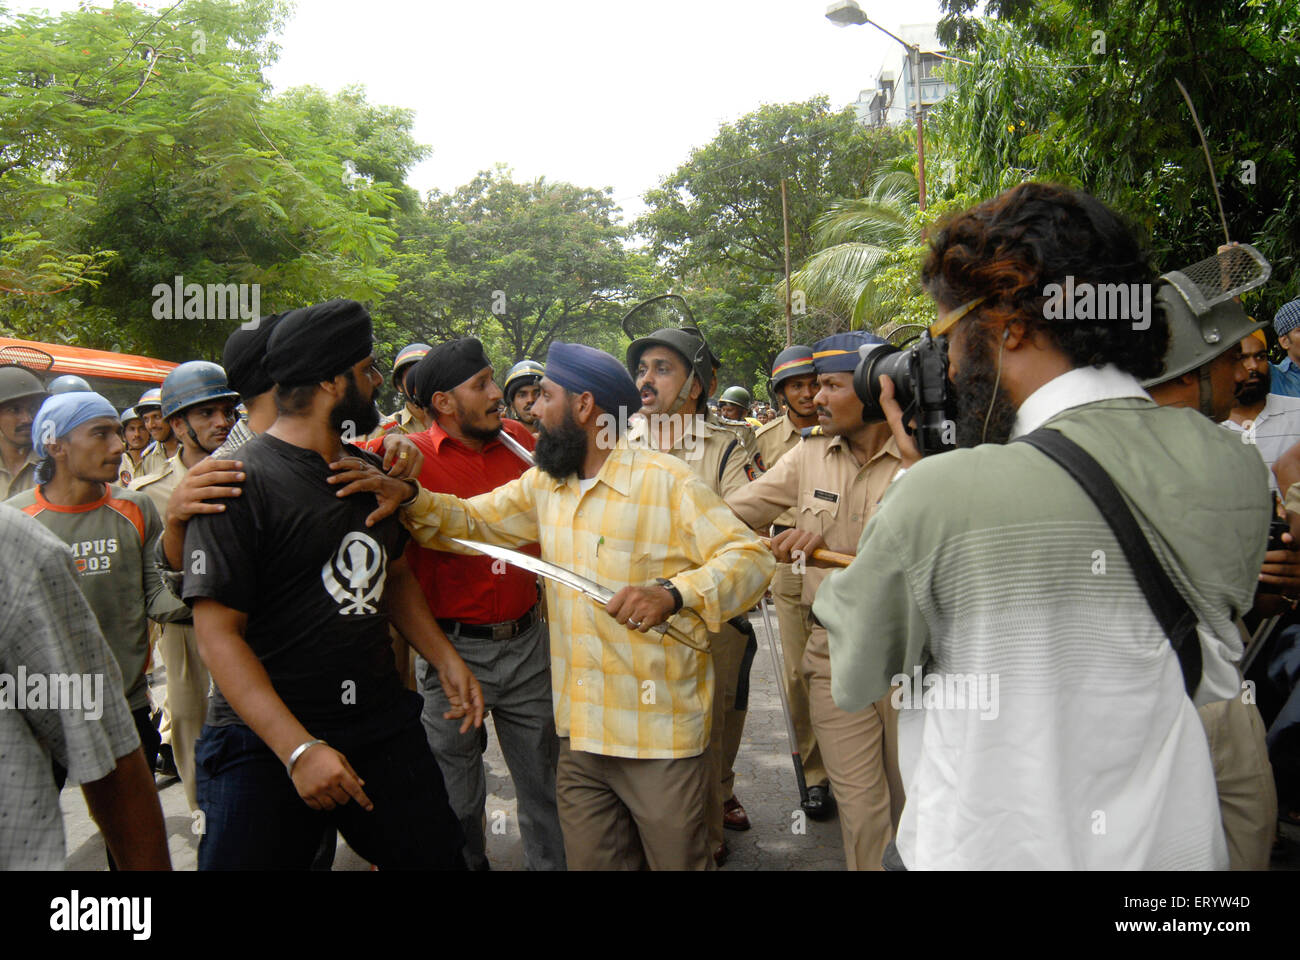 Sikh community protest against firing bodyguard of dera saccha sauda chief ram rahim at Mulund in Bombay Mumbai - Stock Image